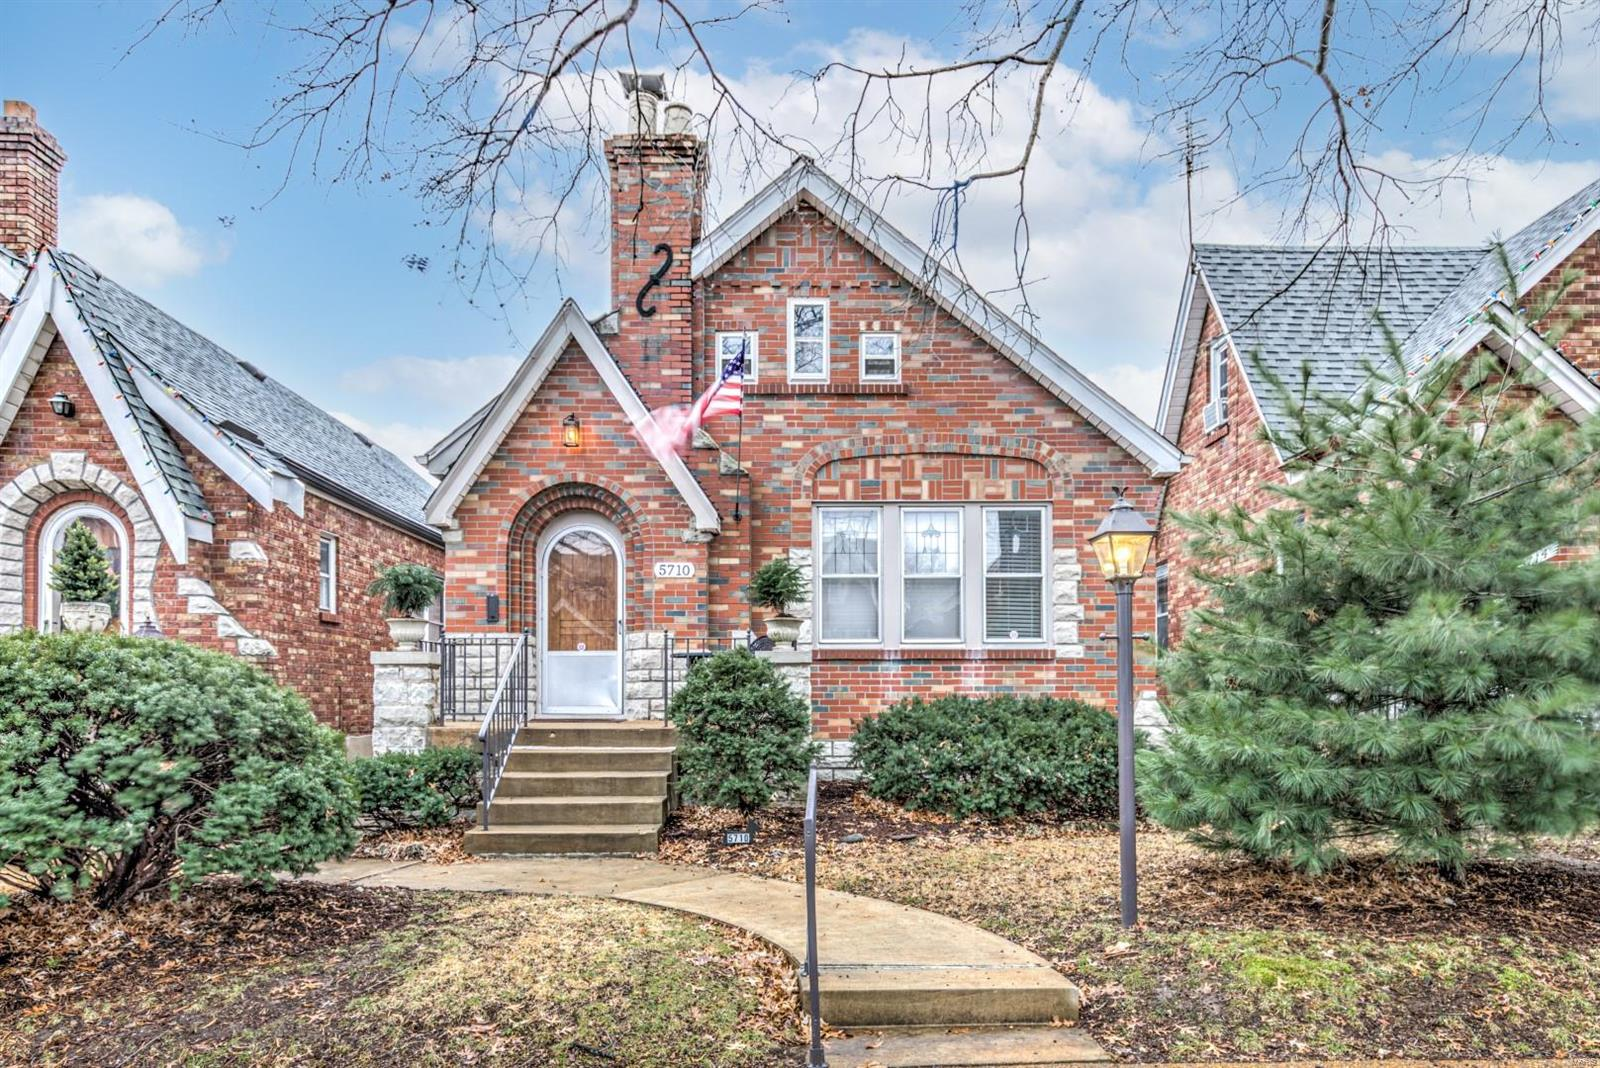 5710 Delor Property Photo - St Louis, MO real estate listing